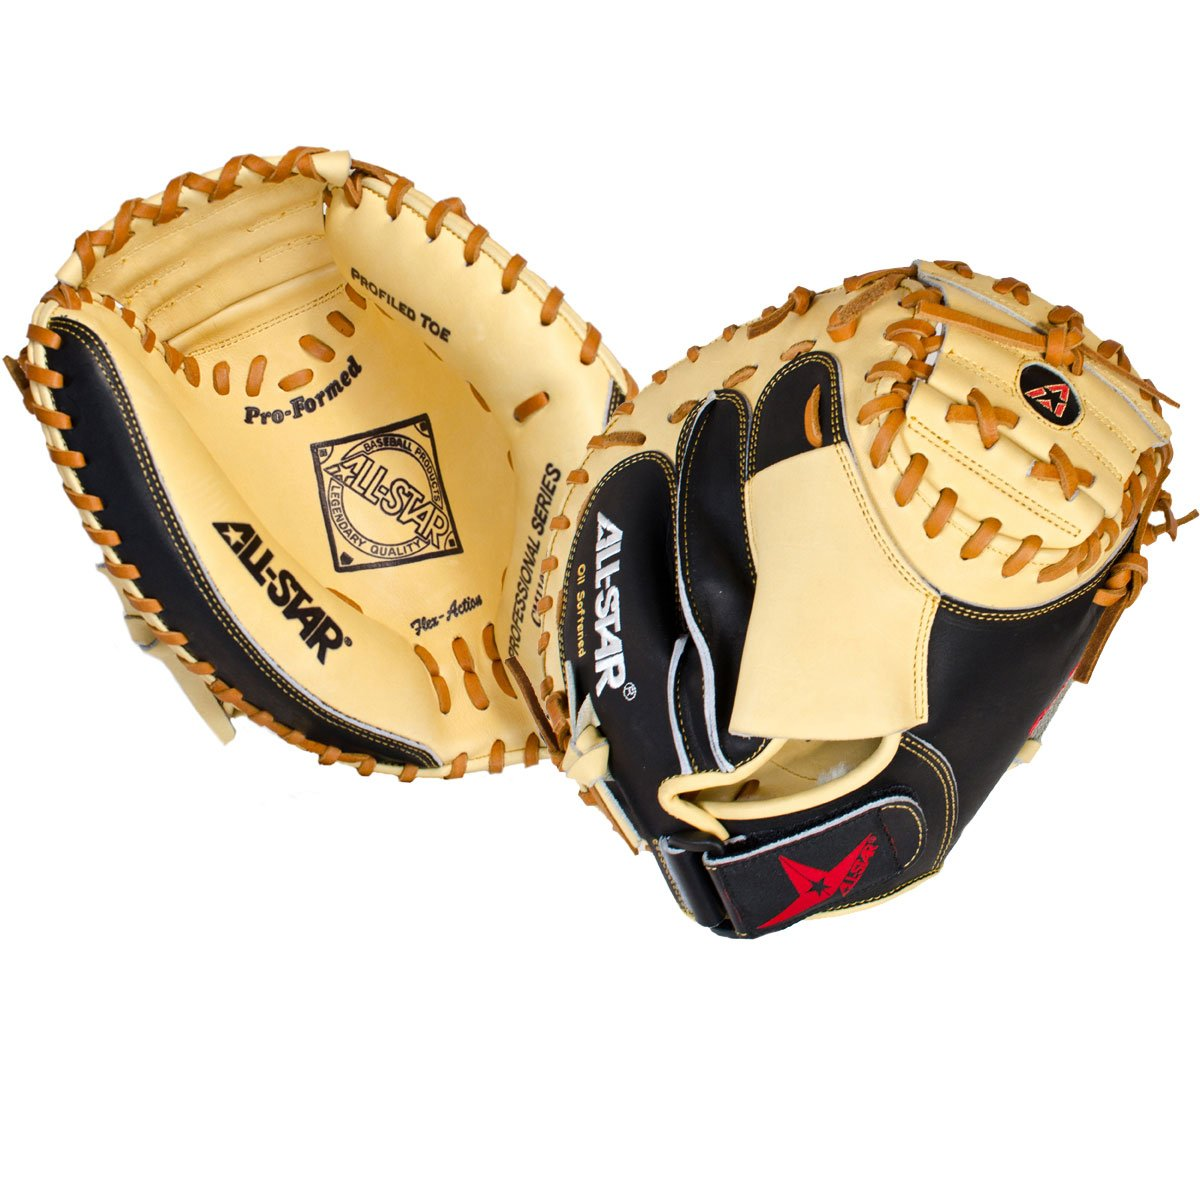 All Star CM1100PRO 31.5 inch Catchers Mitt Pro Grade (Right Hand Throw) : The CM1100PRO is a professional grade mitt designed for smaller hands. It features soft leather for faster break-in and a wide heel channel to make it super easy for youth catchers to close. Black and tan leather mimics the adult pro level mitt and uses similar cutting patterns. Deep pockets, Flex Action crease, velcro closure, and wrist protector included.